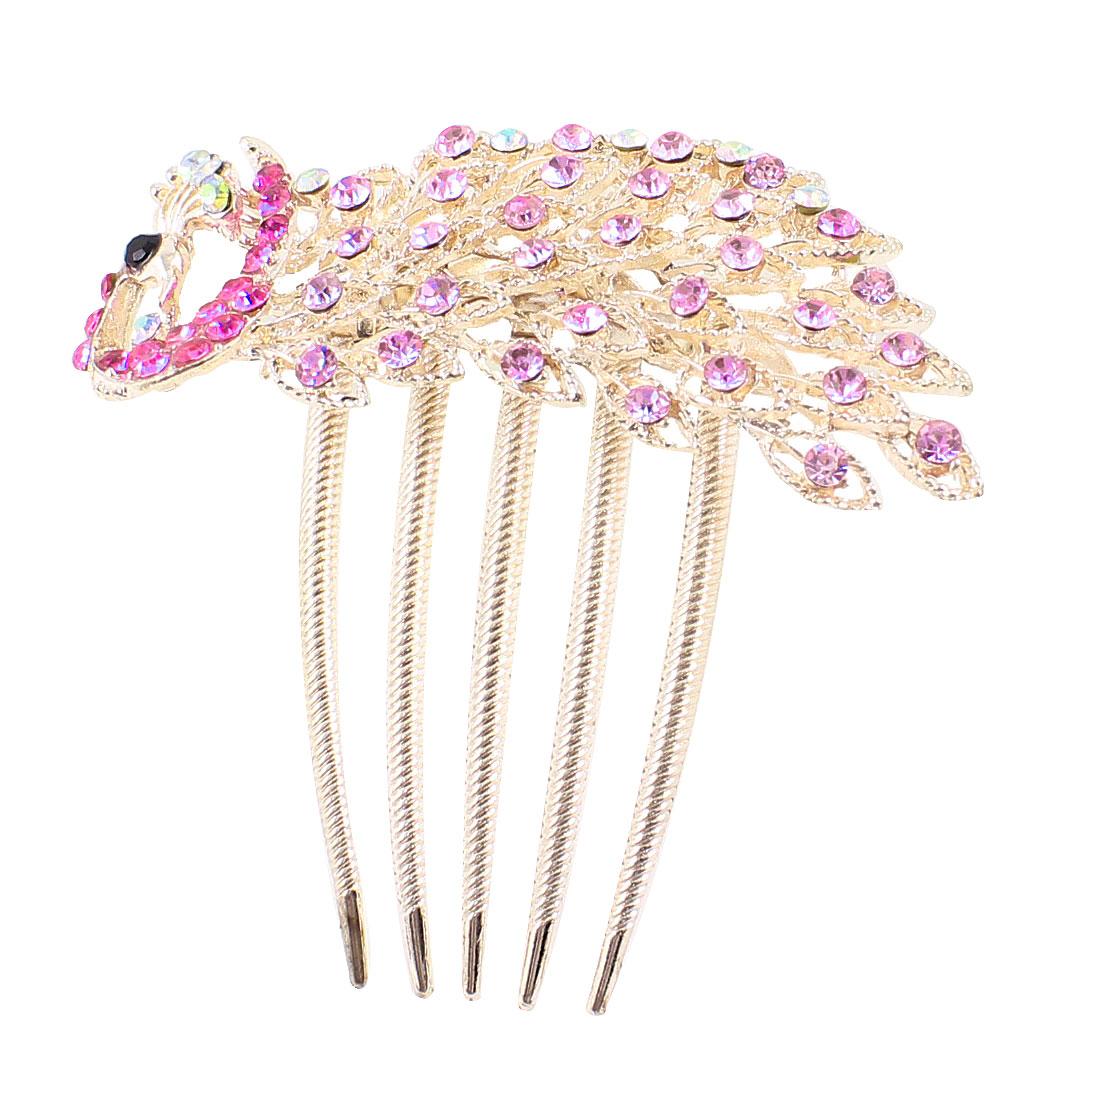 Pale Purple Rhinestones Detailing Peacock Shape Gold Tone Metal Hair Comb Clip